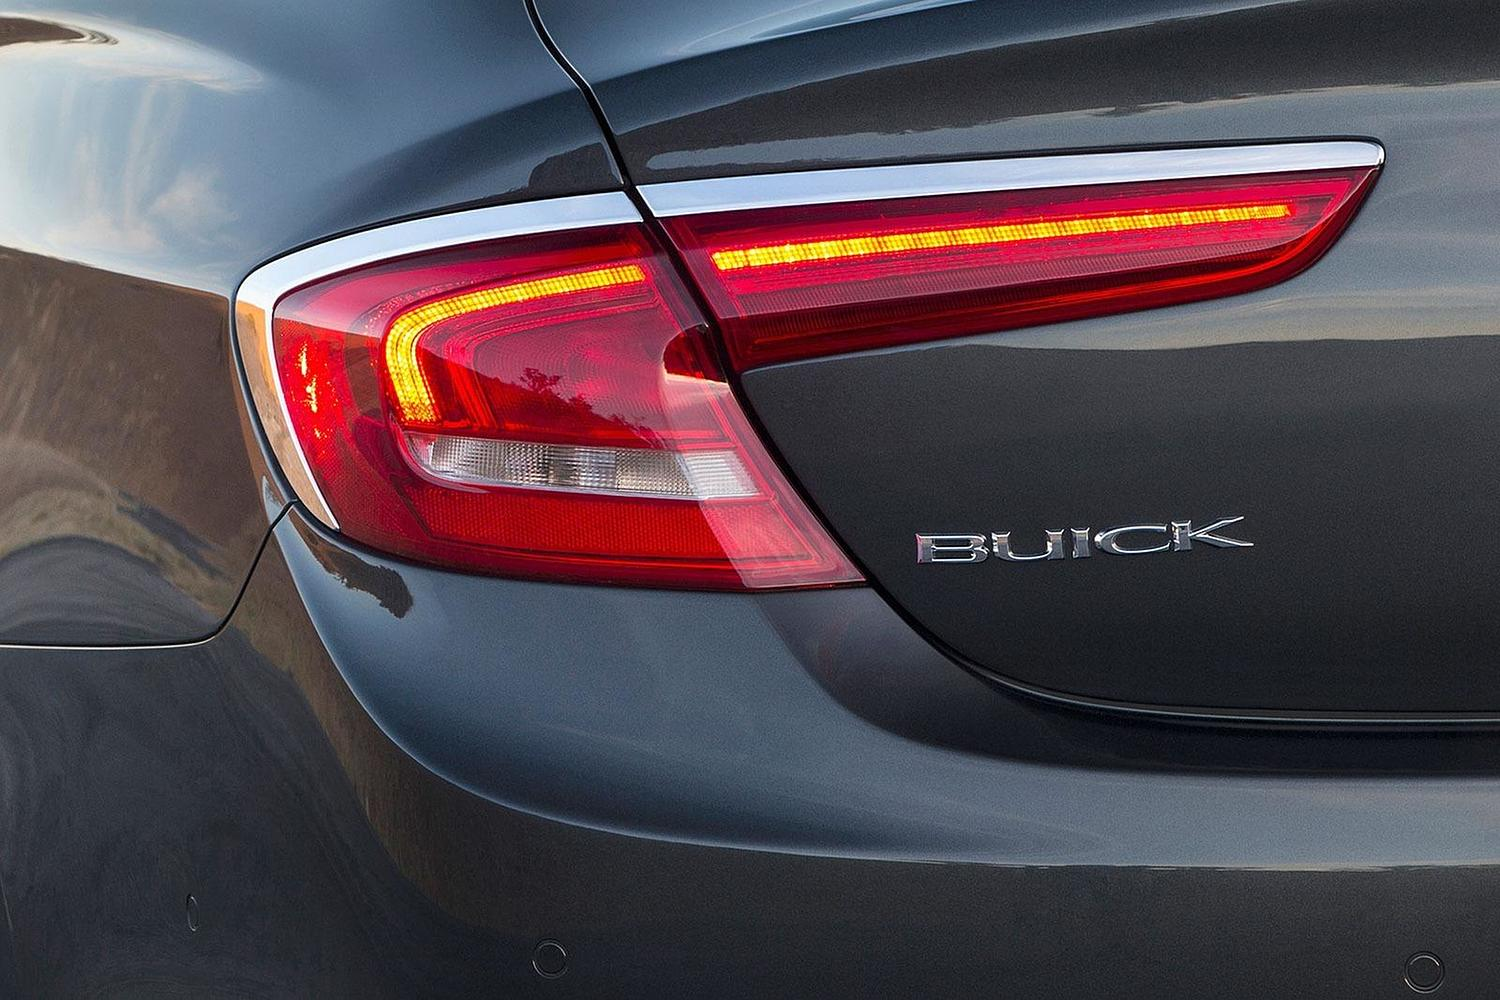 Buick LaCrosse Premium Sedan Rear Badge (2017 model year shown)